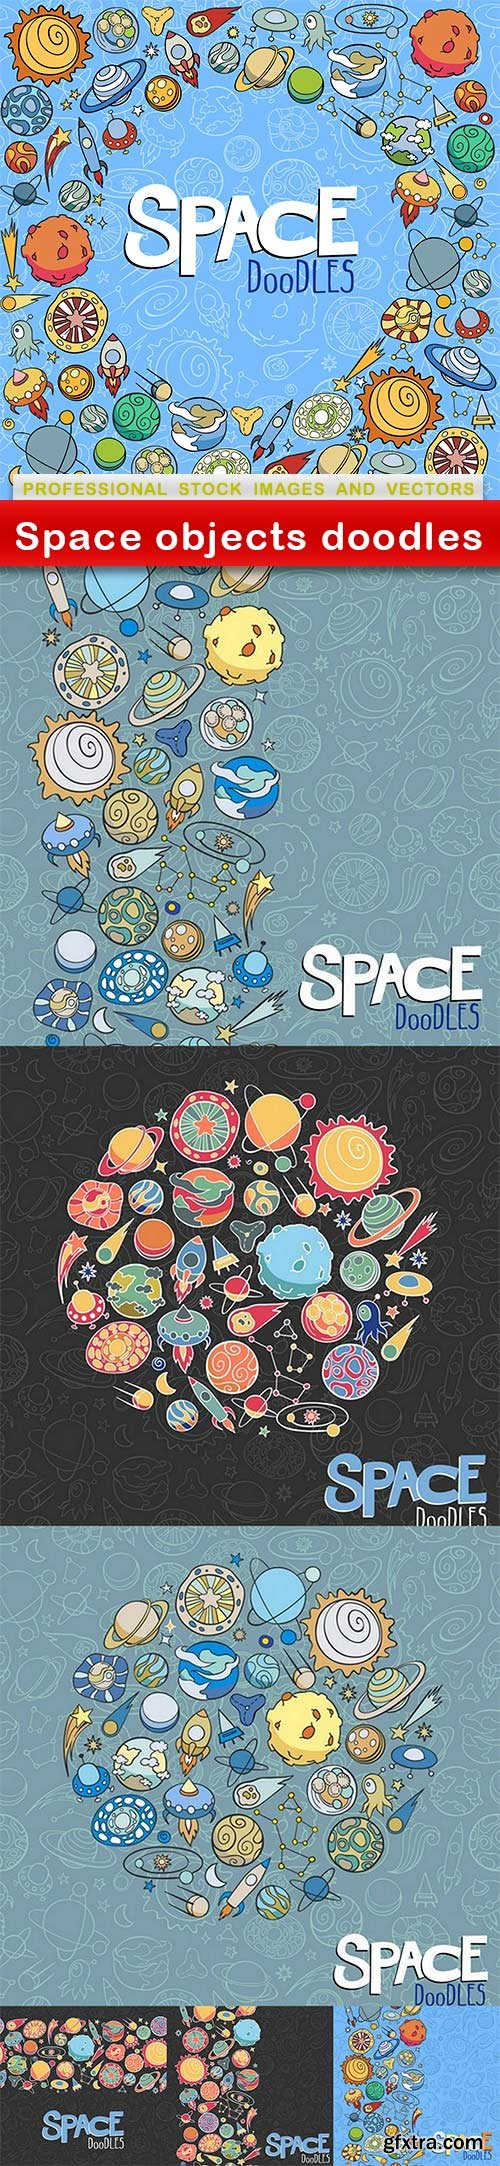 Space objects doodles - 7 EPS